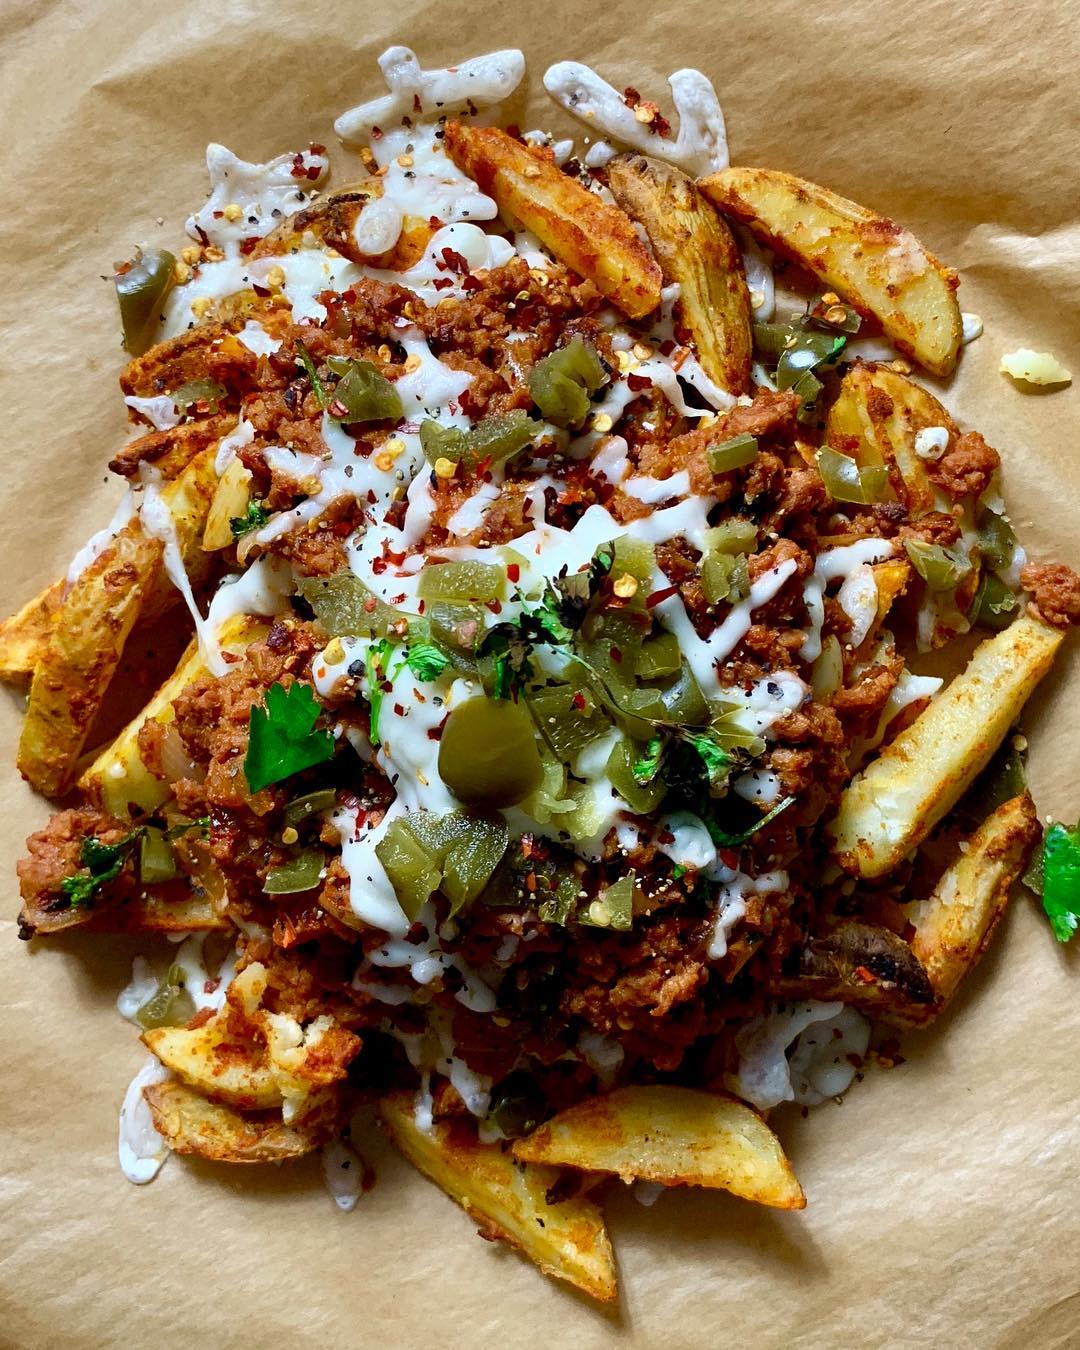 Chips, with Meatless Farm mince, topped with melted cheese